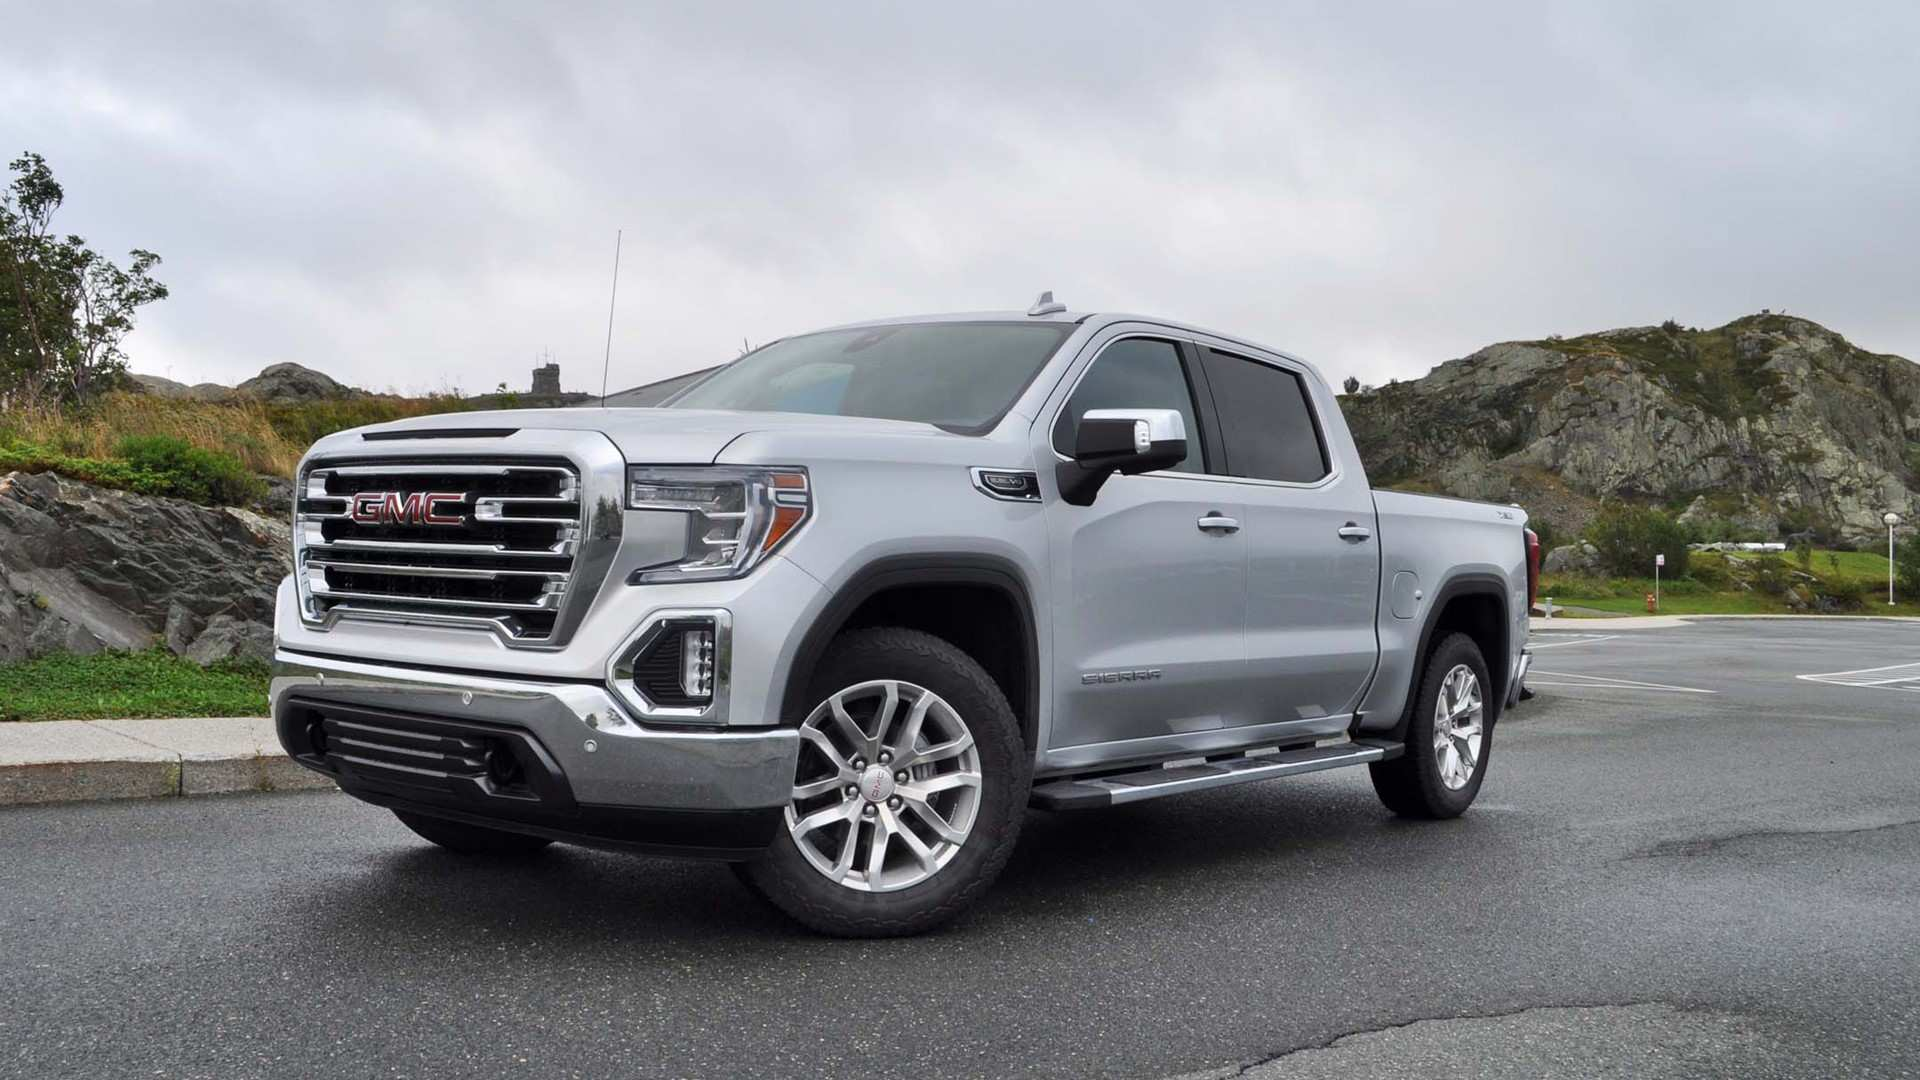 63 All New 2019 Gmc 1500 Release Date Review by 2019 Gmc 1500 Release Date